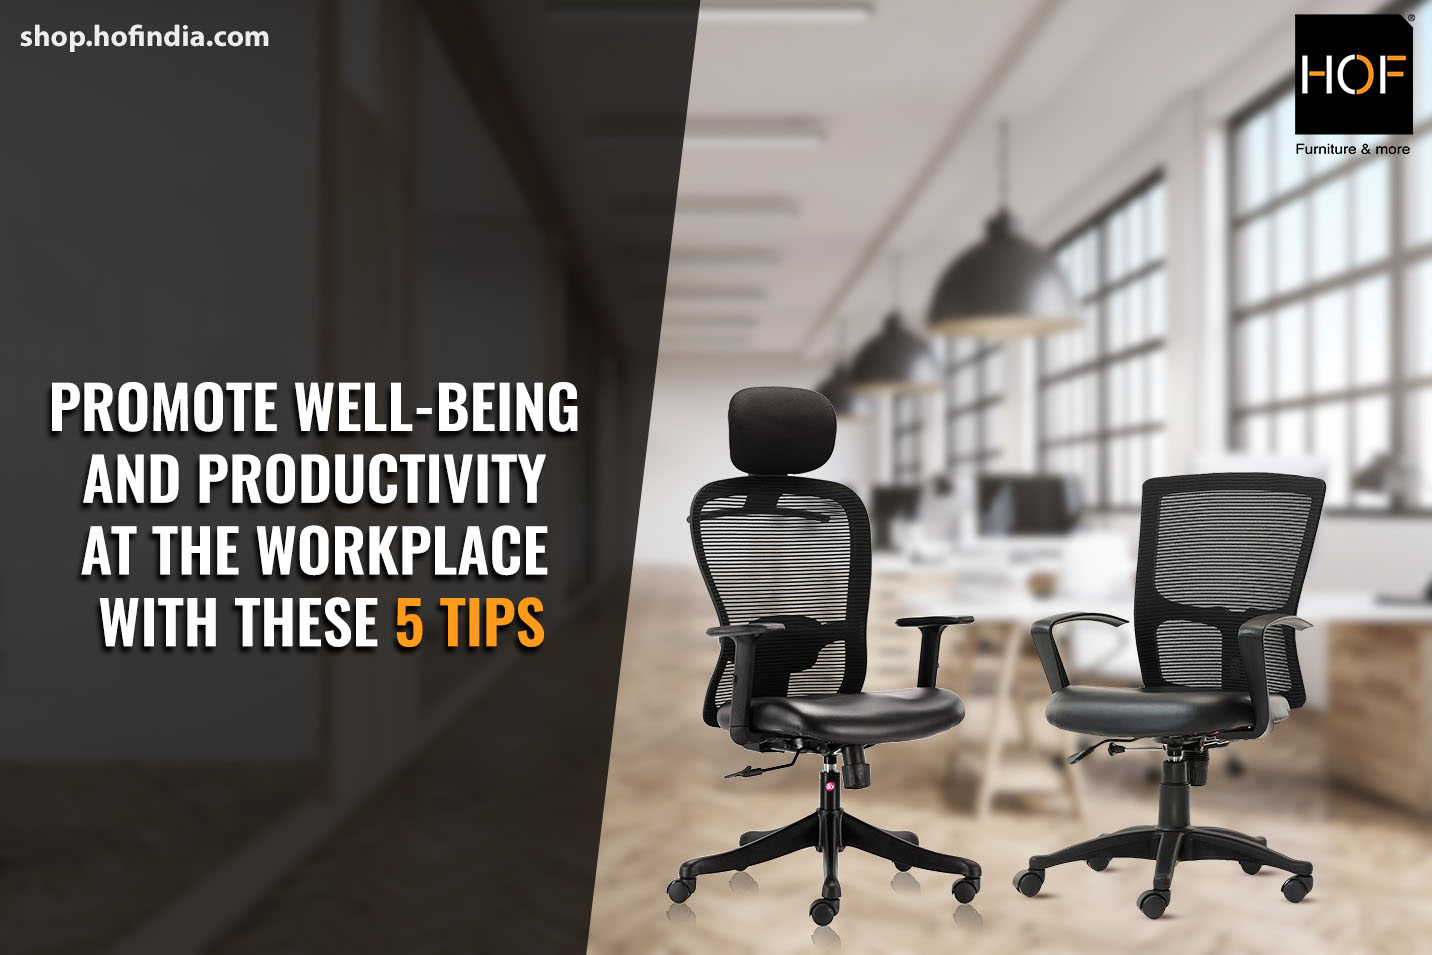 Promote well-being and productivity at the workplace with these 5 tips